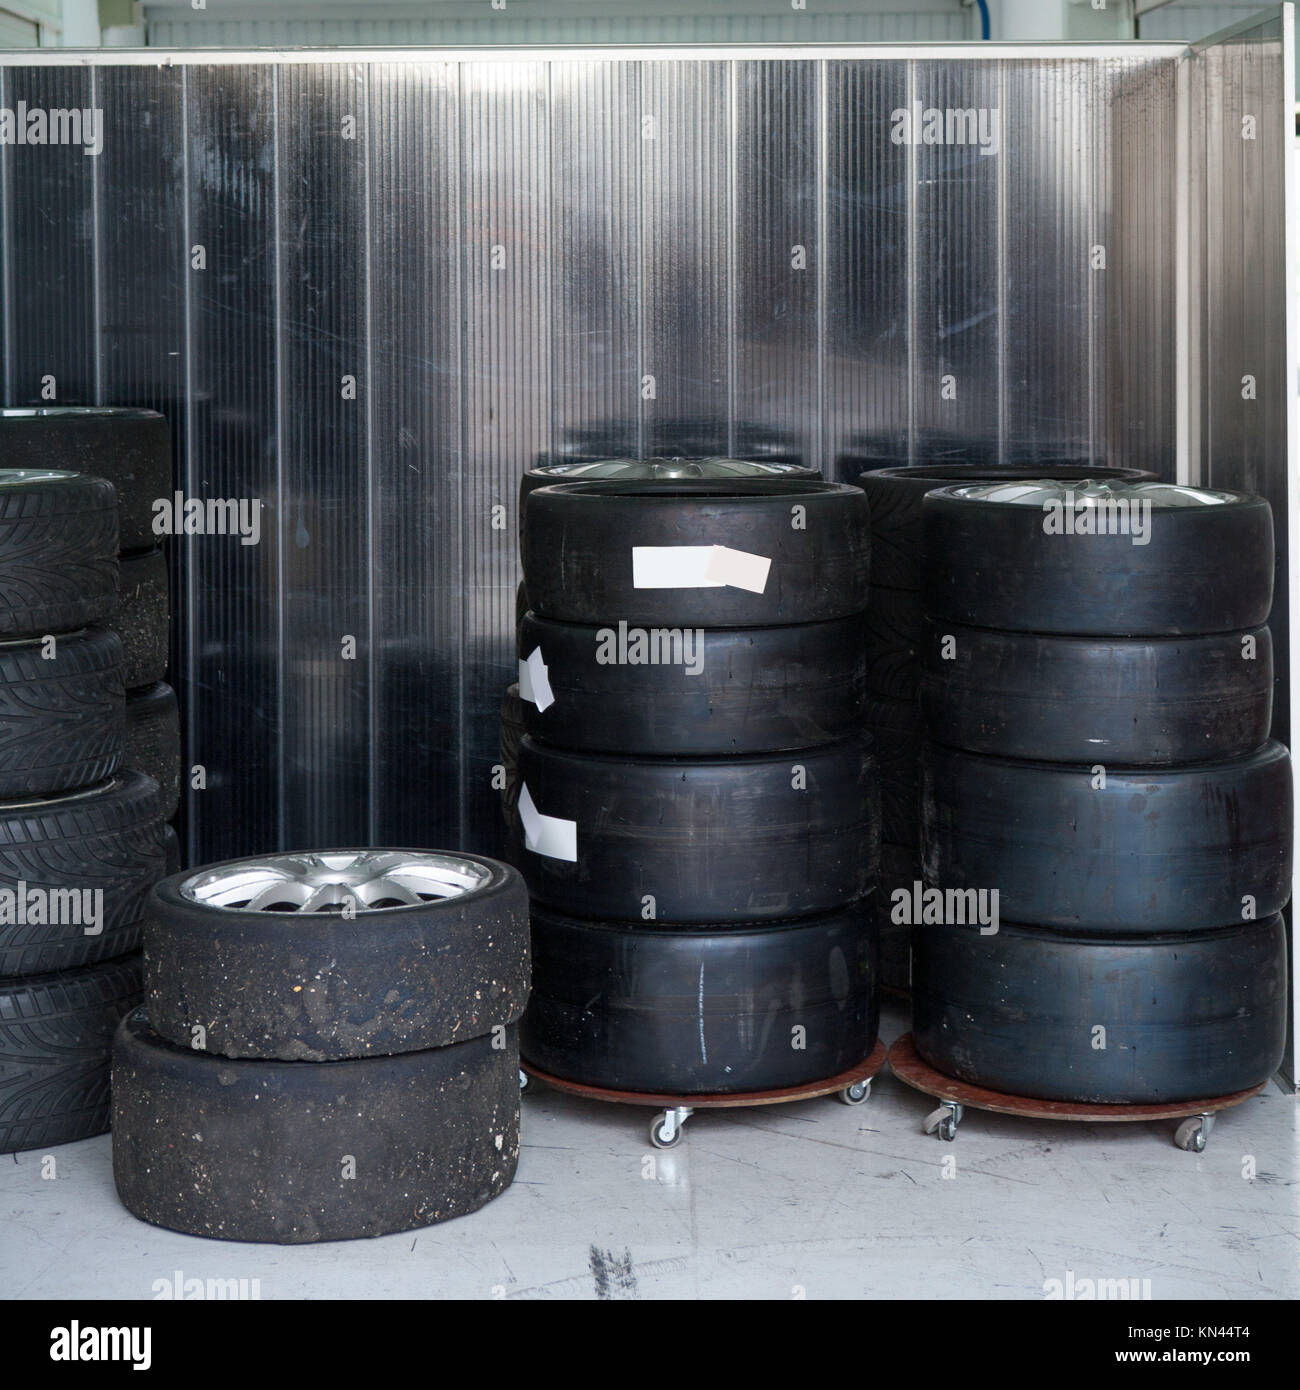 Formula One 1 race tires and wheels in boxes. - Stock Image